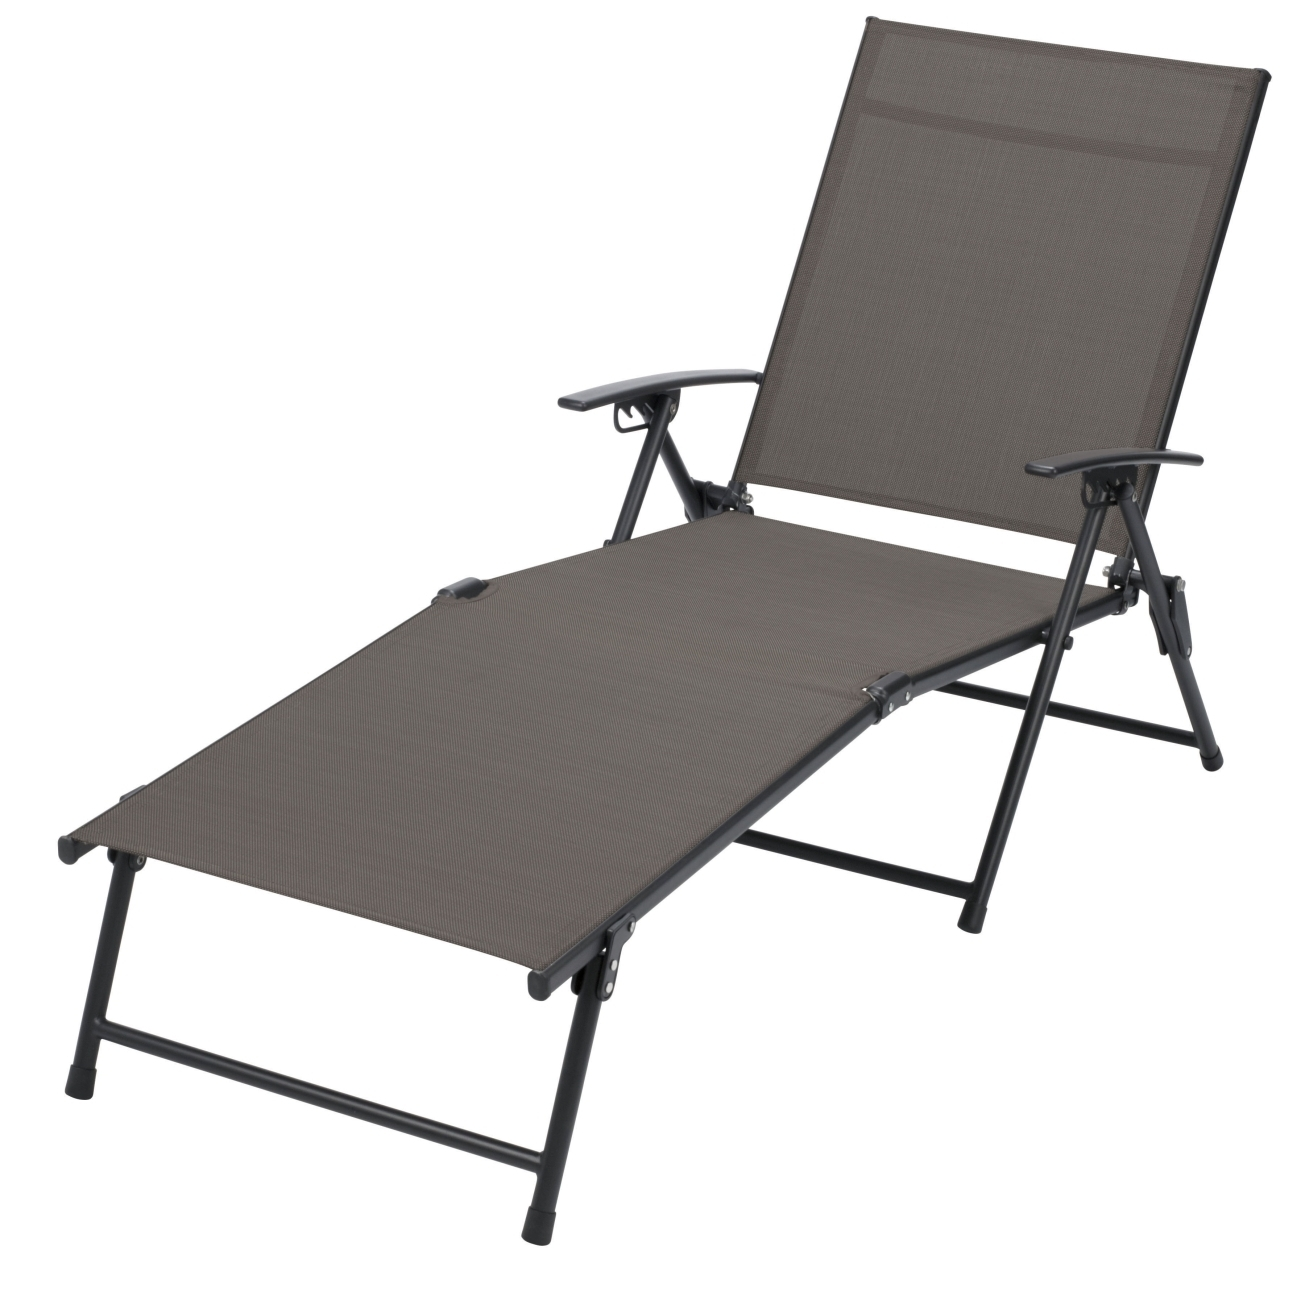 Folding Chaise Lounge Lawn Chairs Intended For Popular Inspirations: Tri Fold Beach Chair (View 4 of 15)